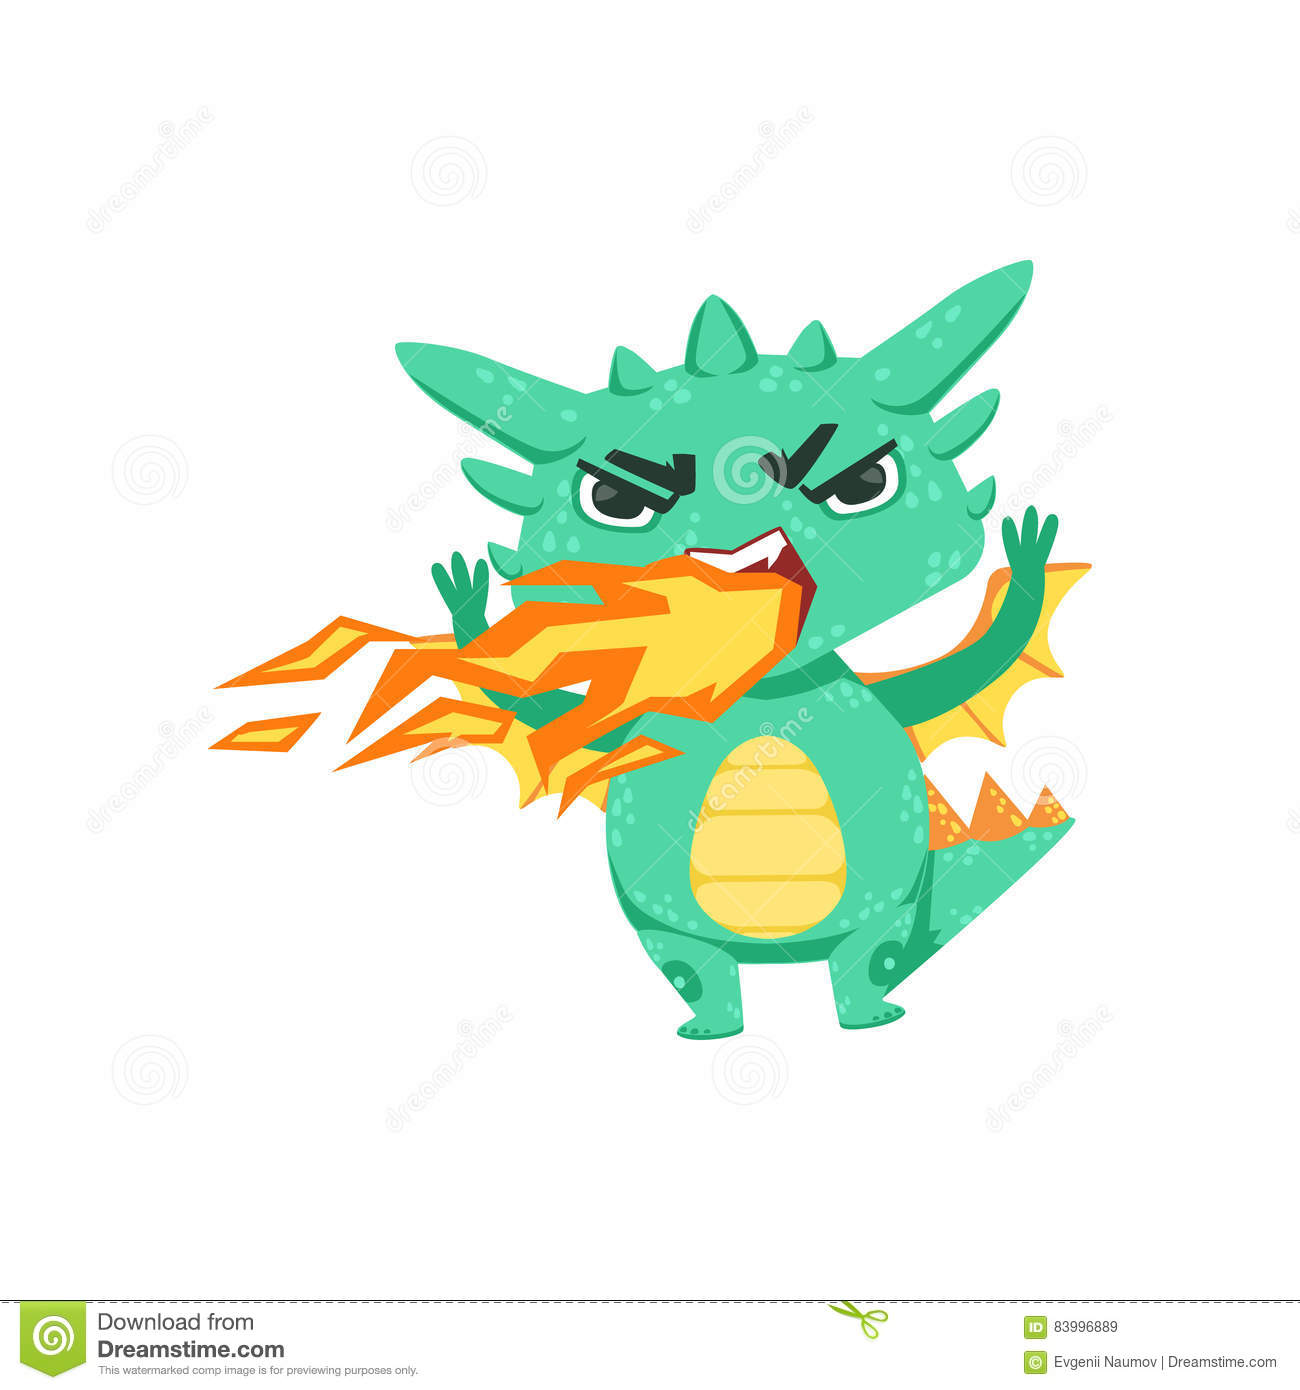 Little Anime Style Baby Dragon Off Breathing Fire Cartoon Character Emoji Illustration Stock Vector Illustration Of Dragon Breathing 83996889